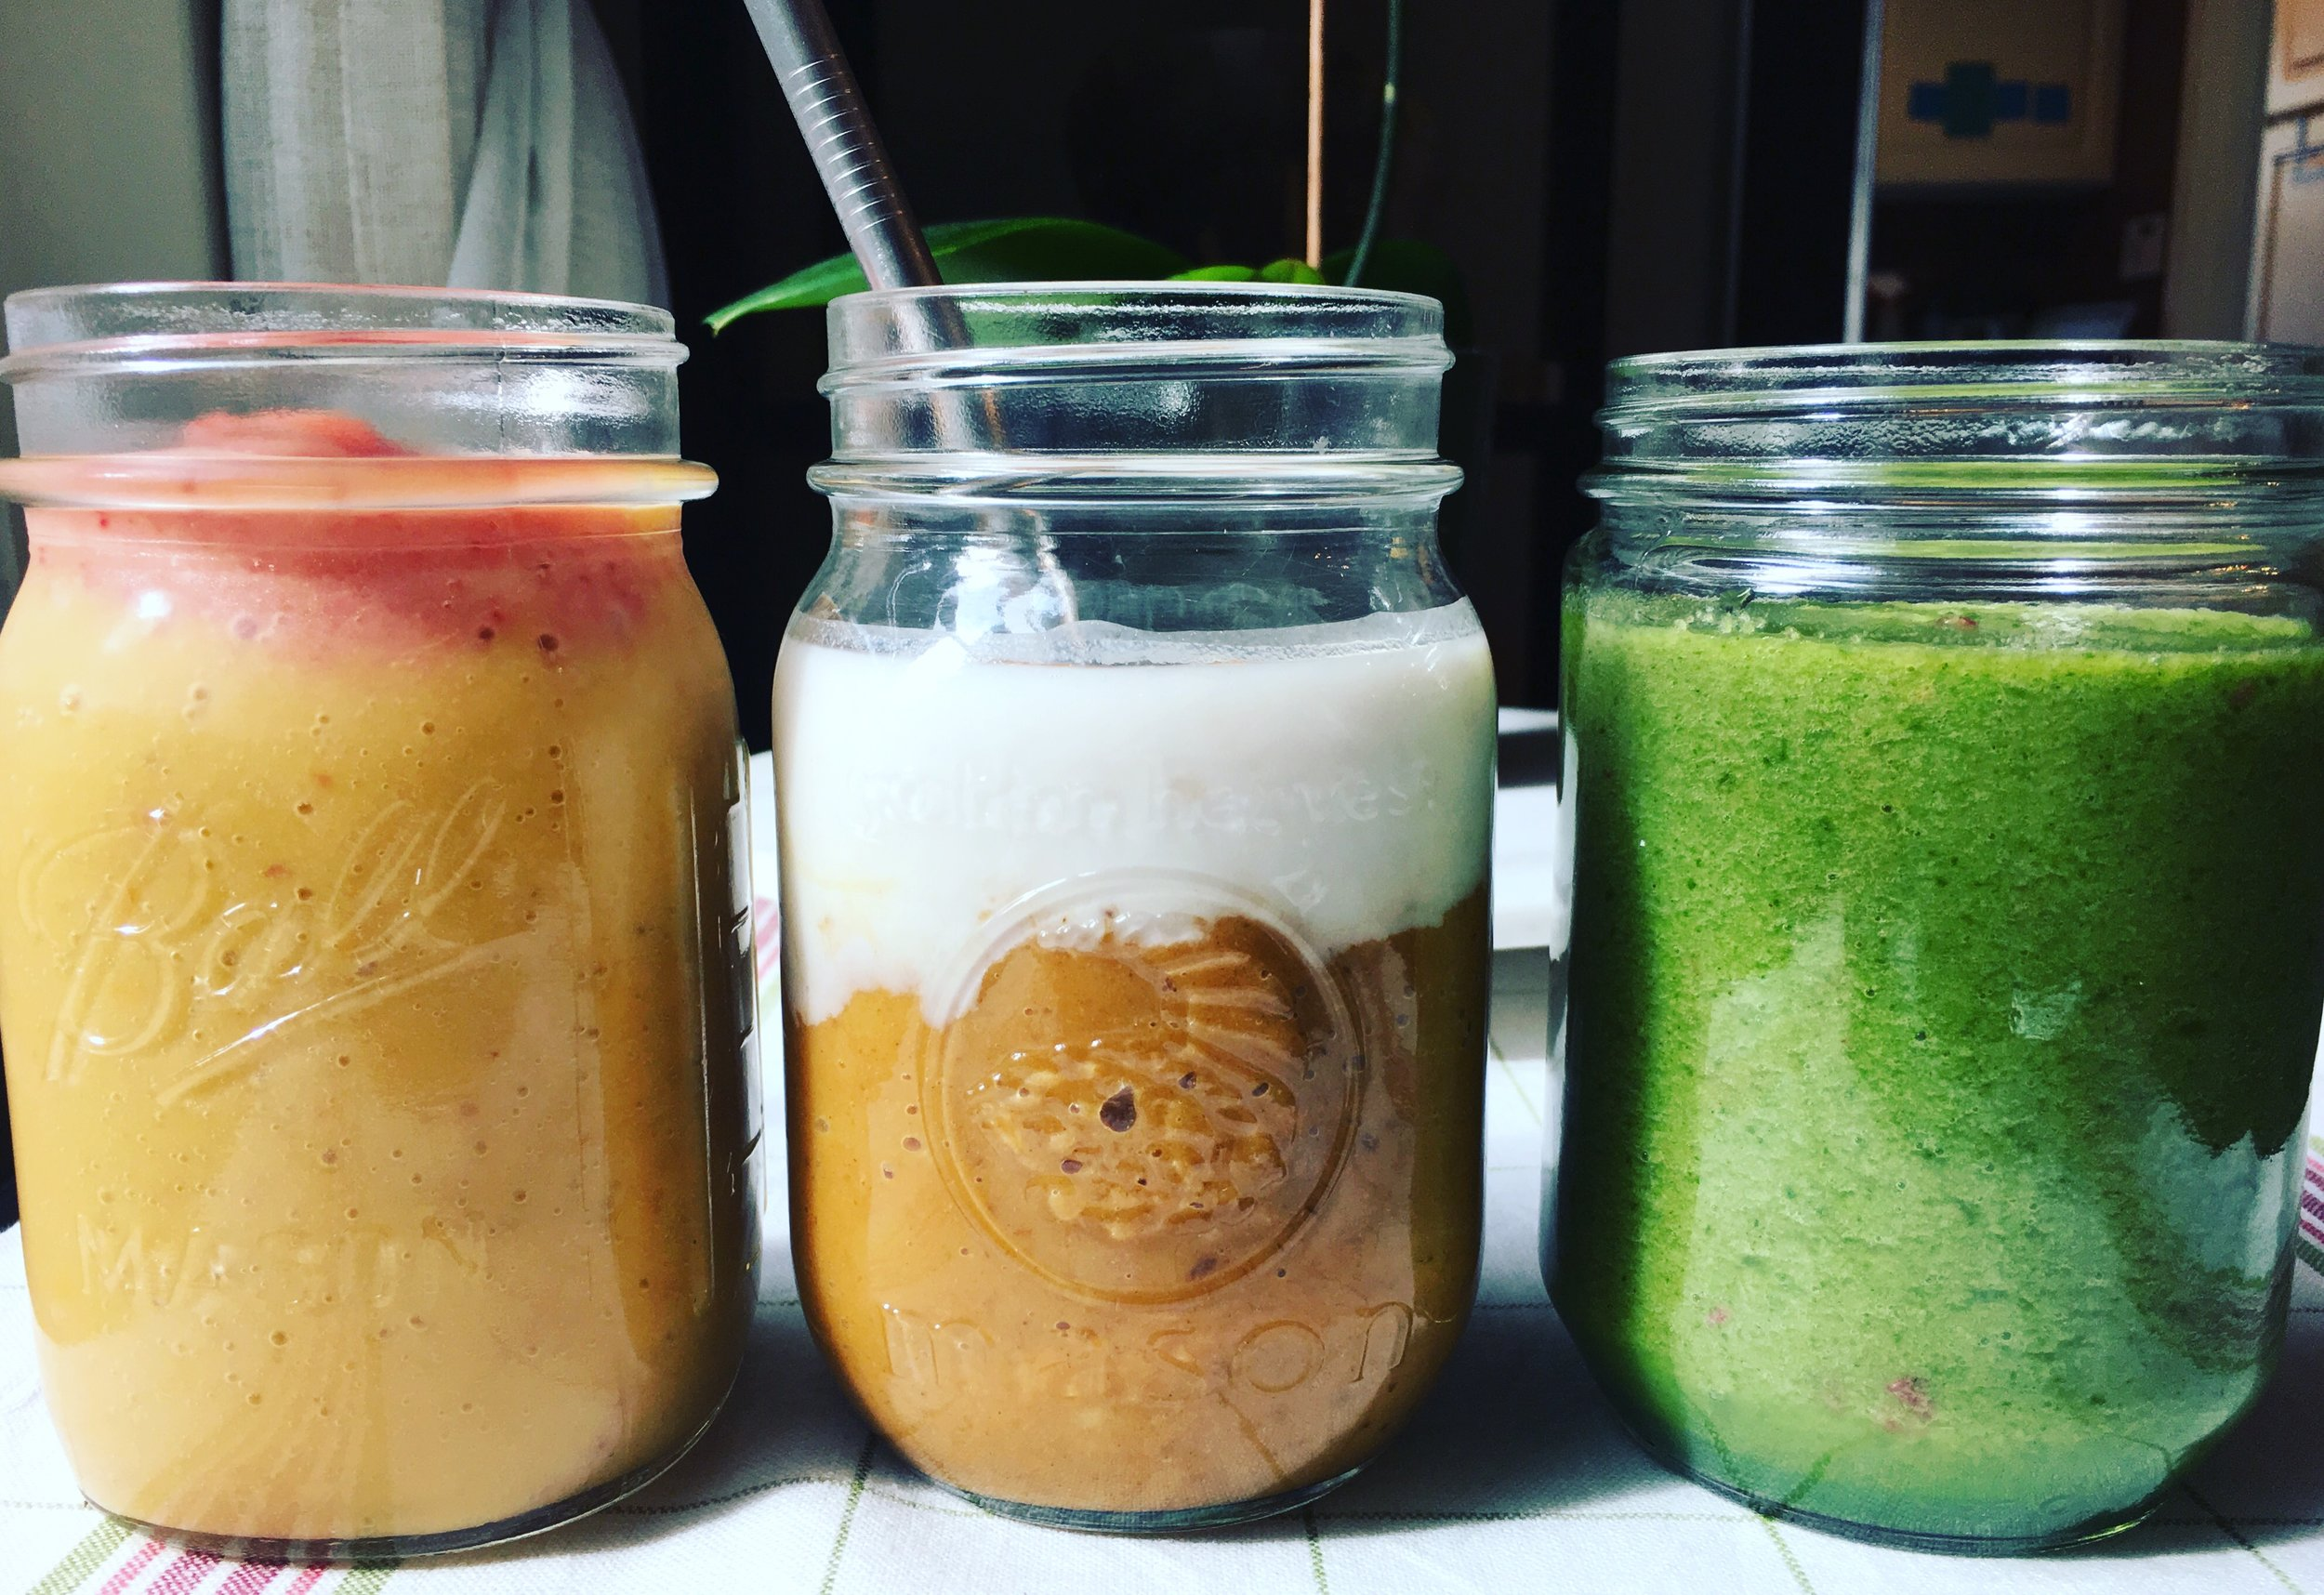 From left to right: Fall Sunset Smoothie, Pumpkin Pie Smoothie, Autumn Greens Smoothie